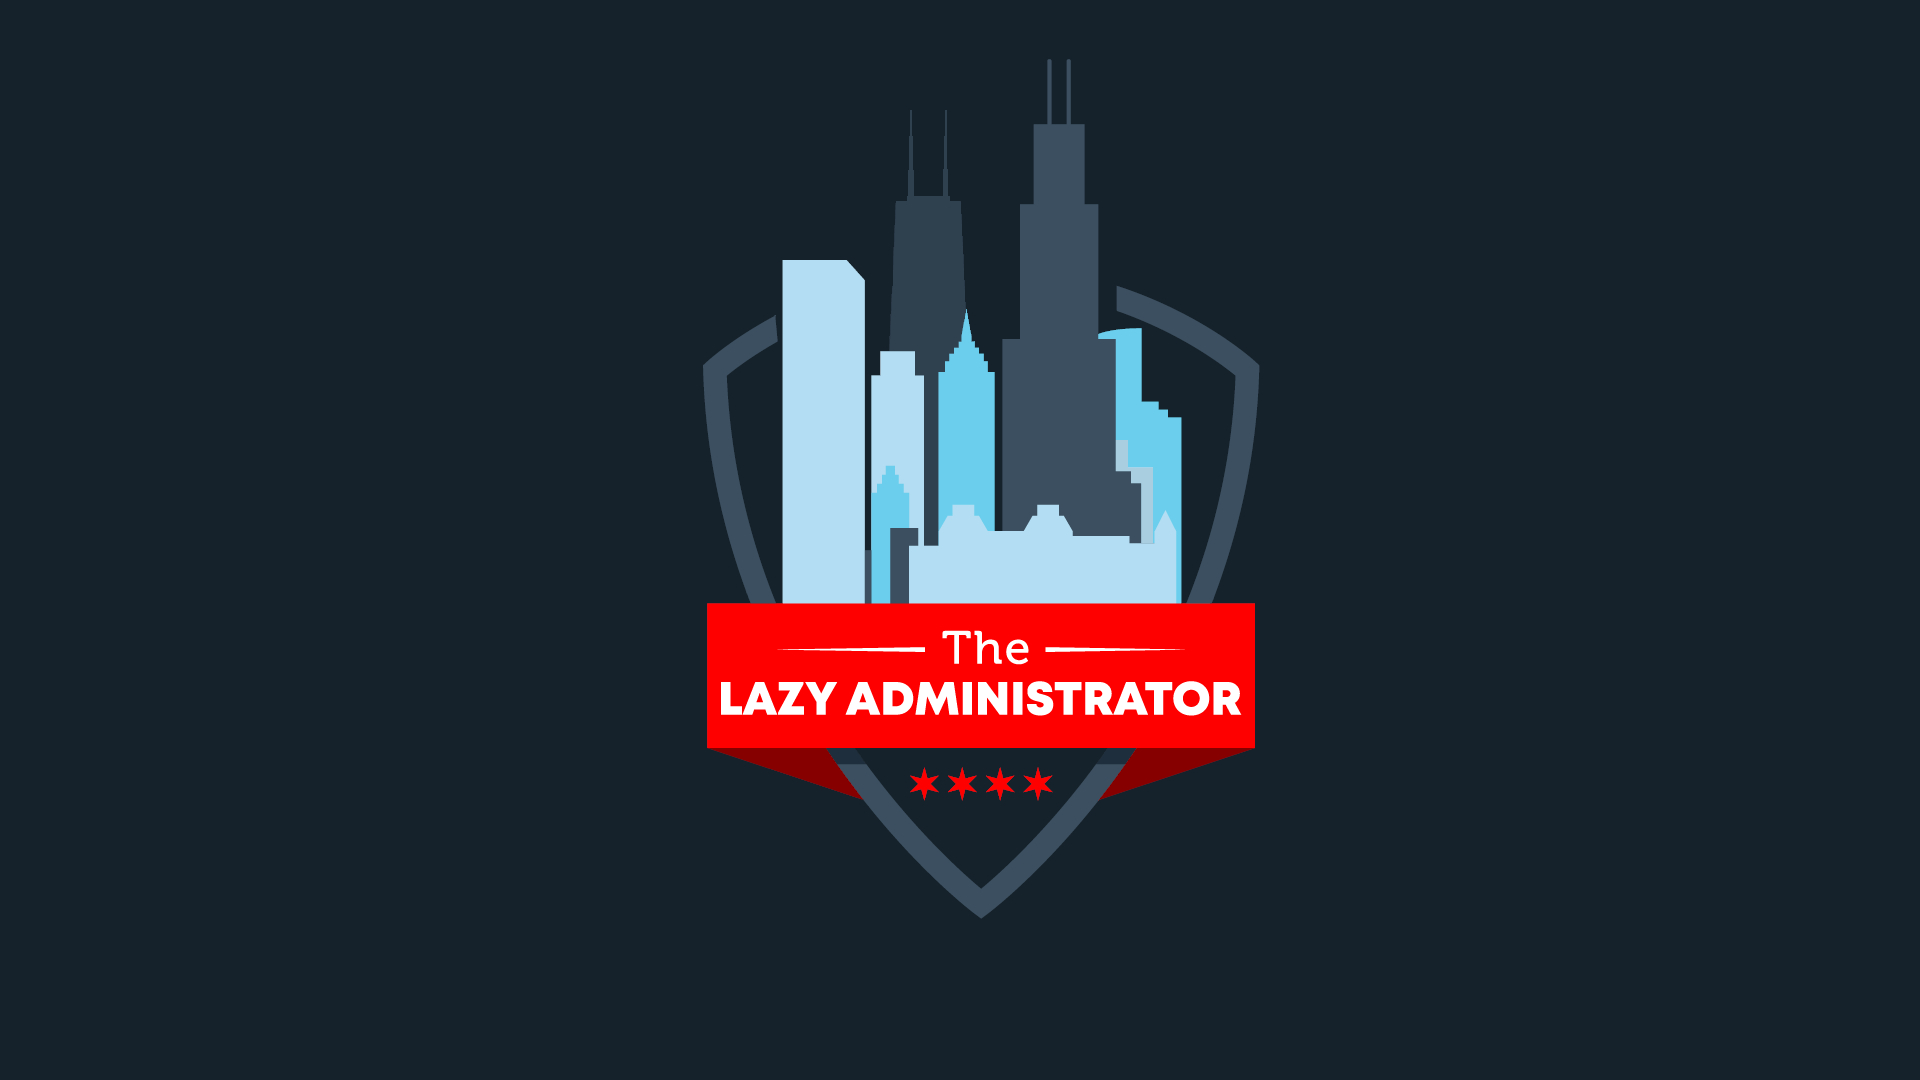 The Lazy Administrator - Finding ways to do the most work with the